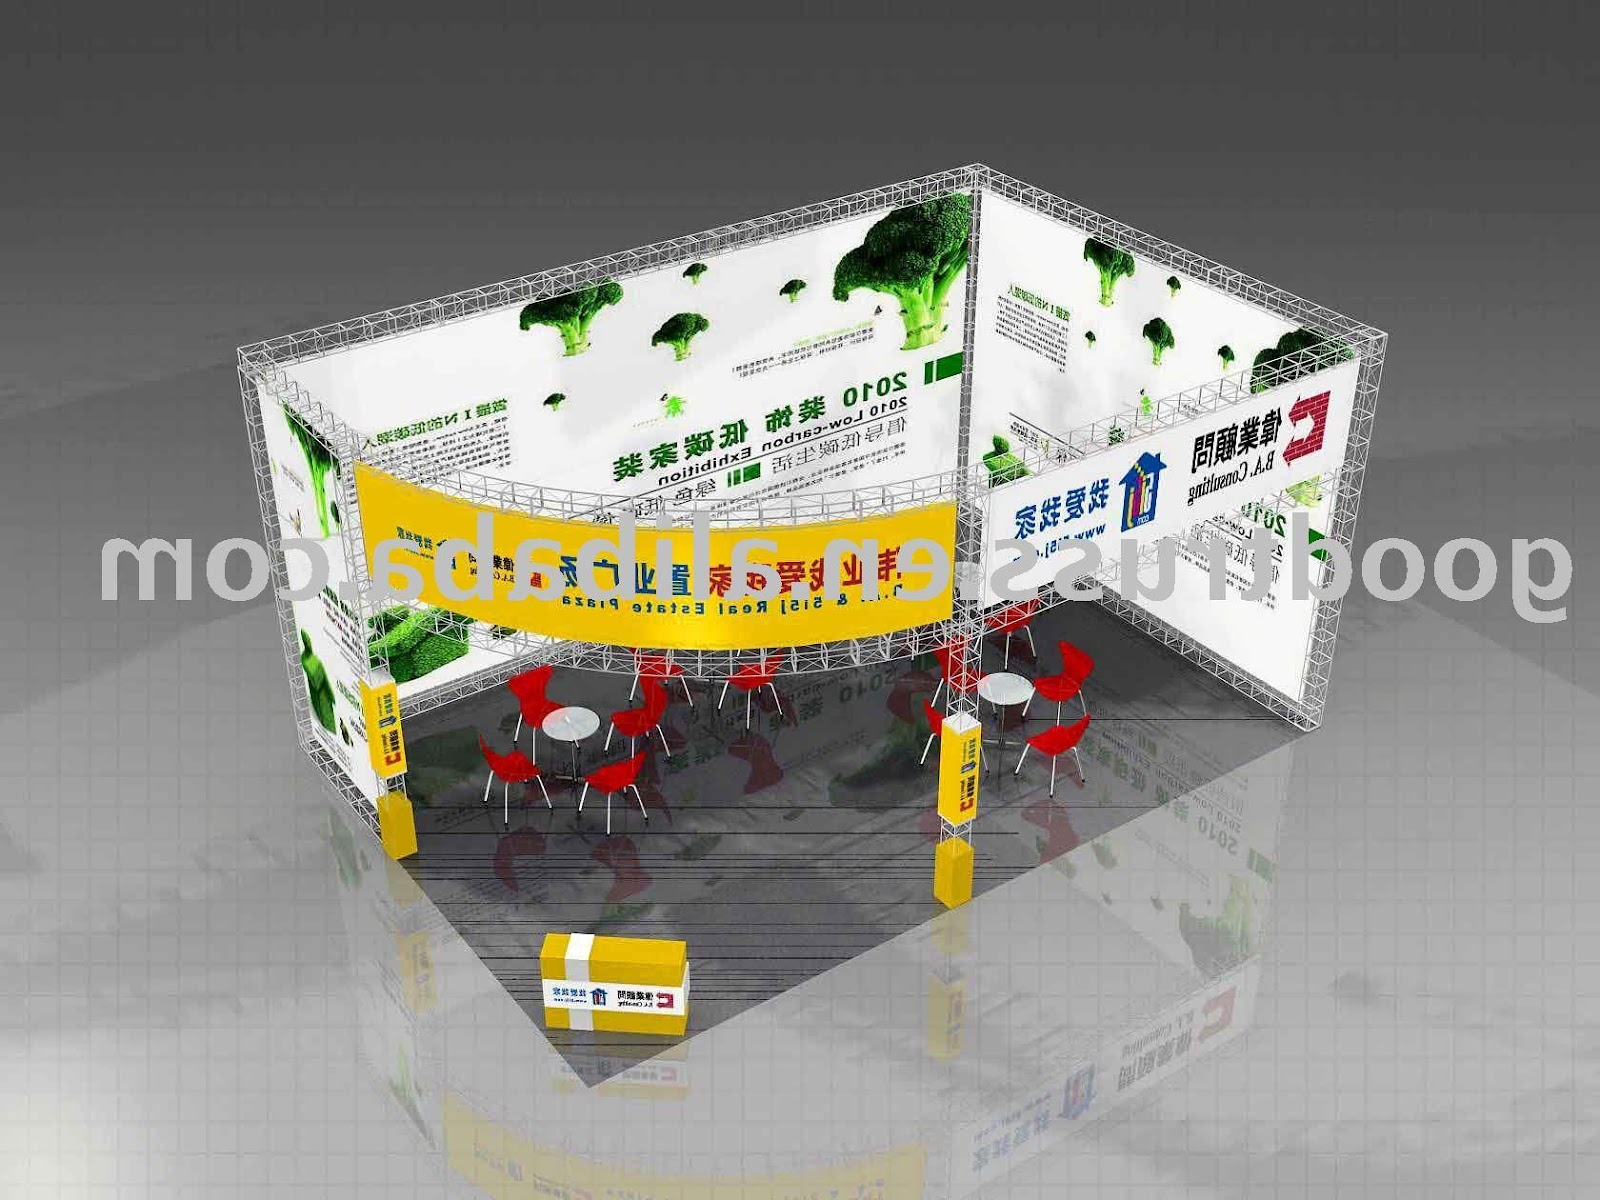 exhibition   expo  booth